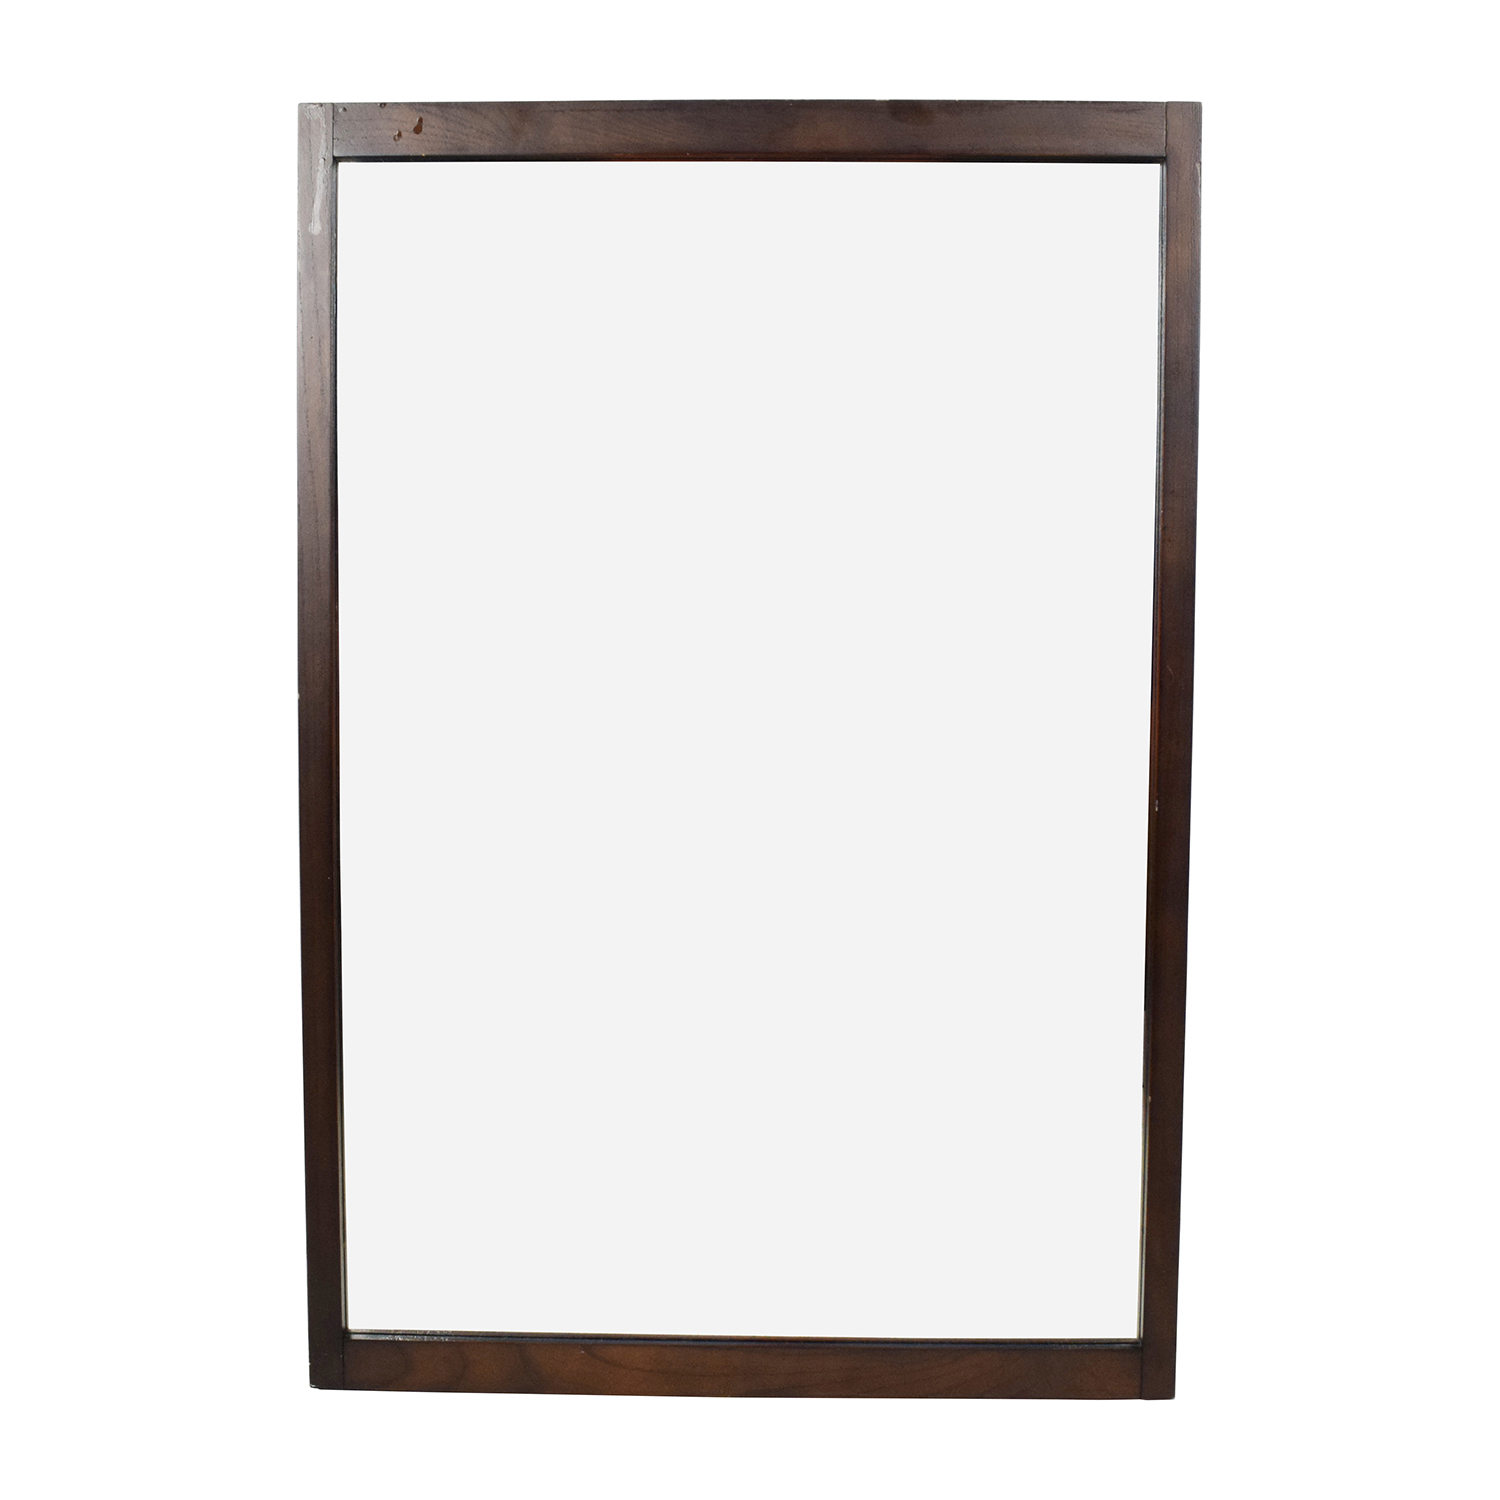 OFF Modani Modani Solaris Wall Mirror Decor